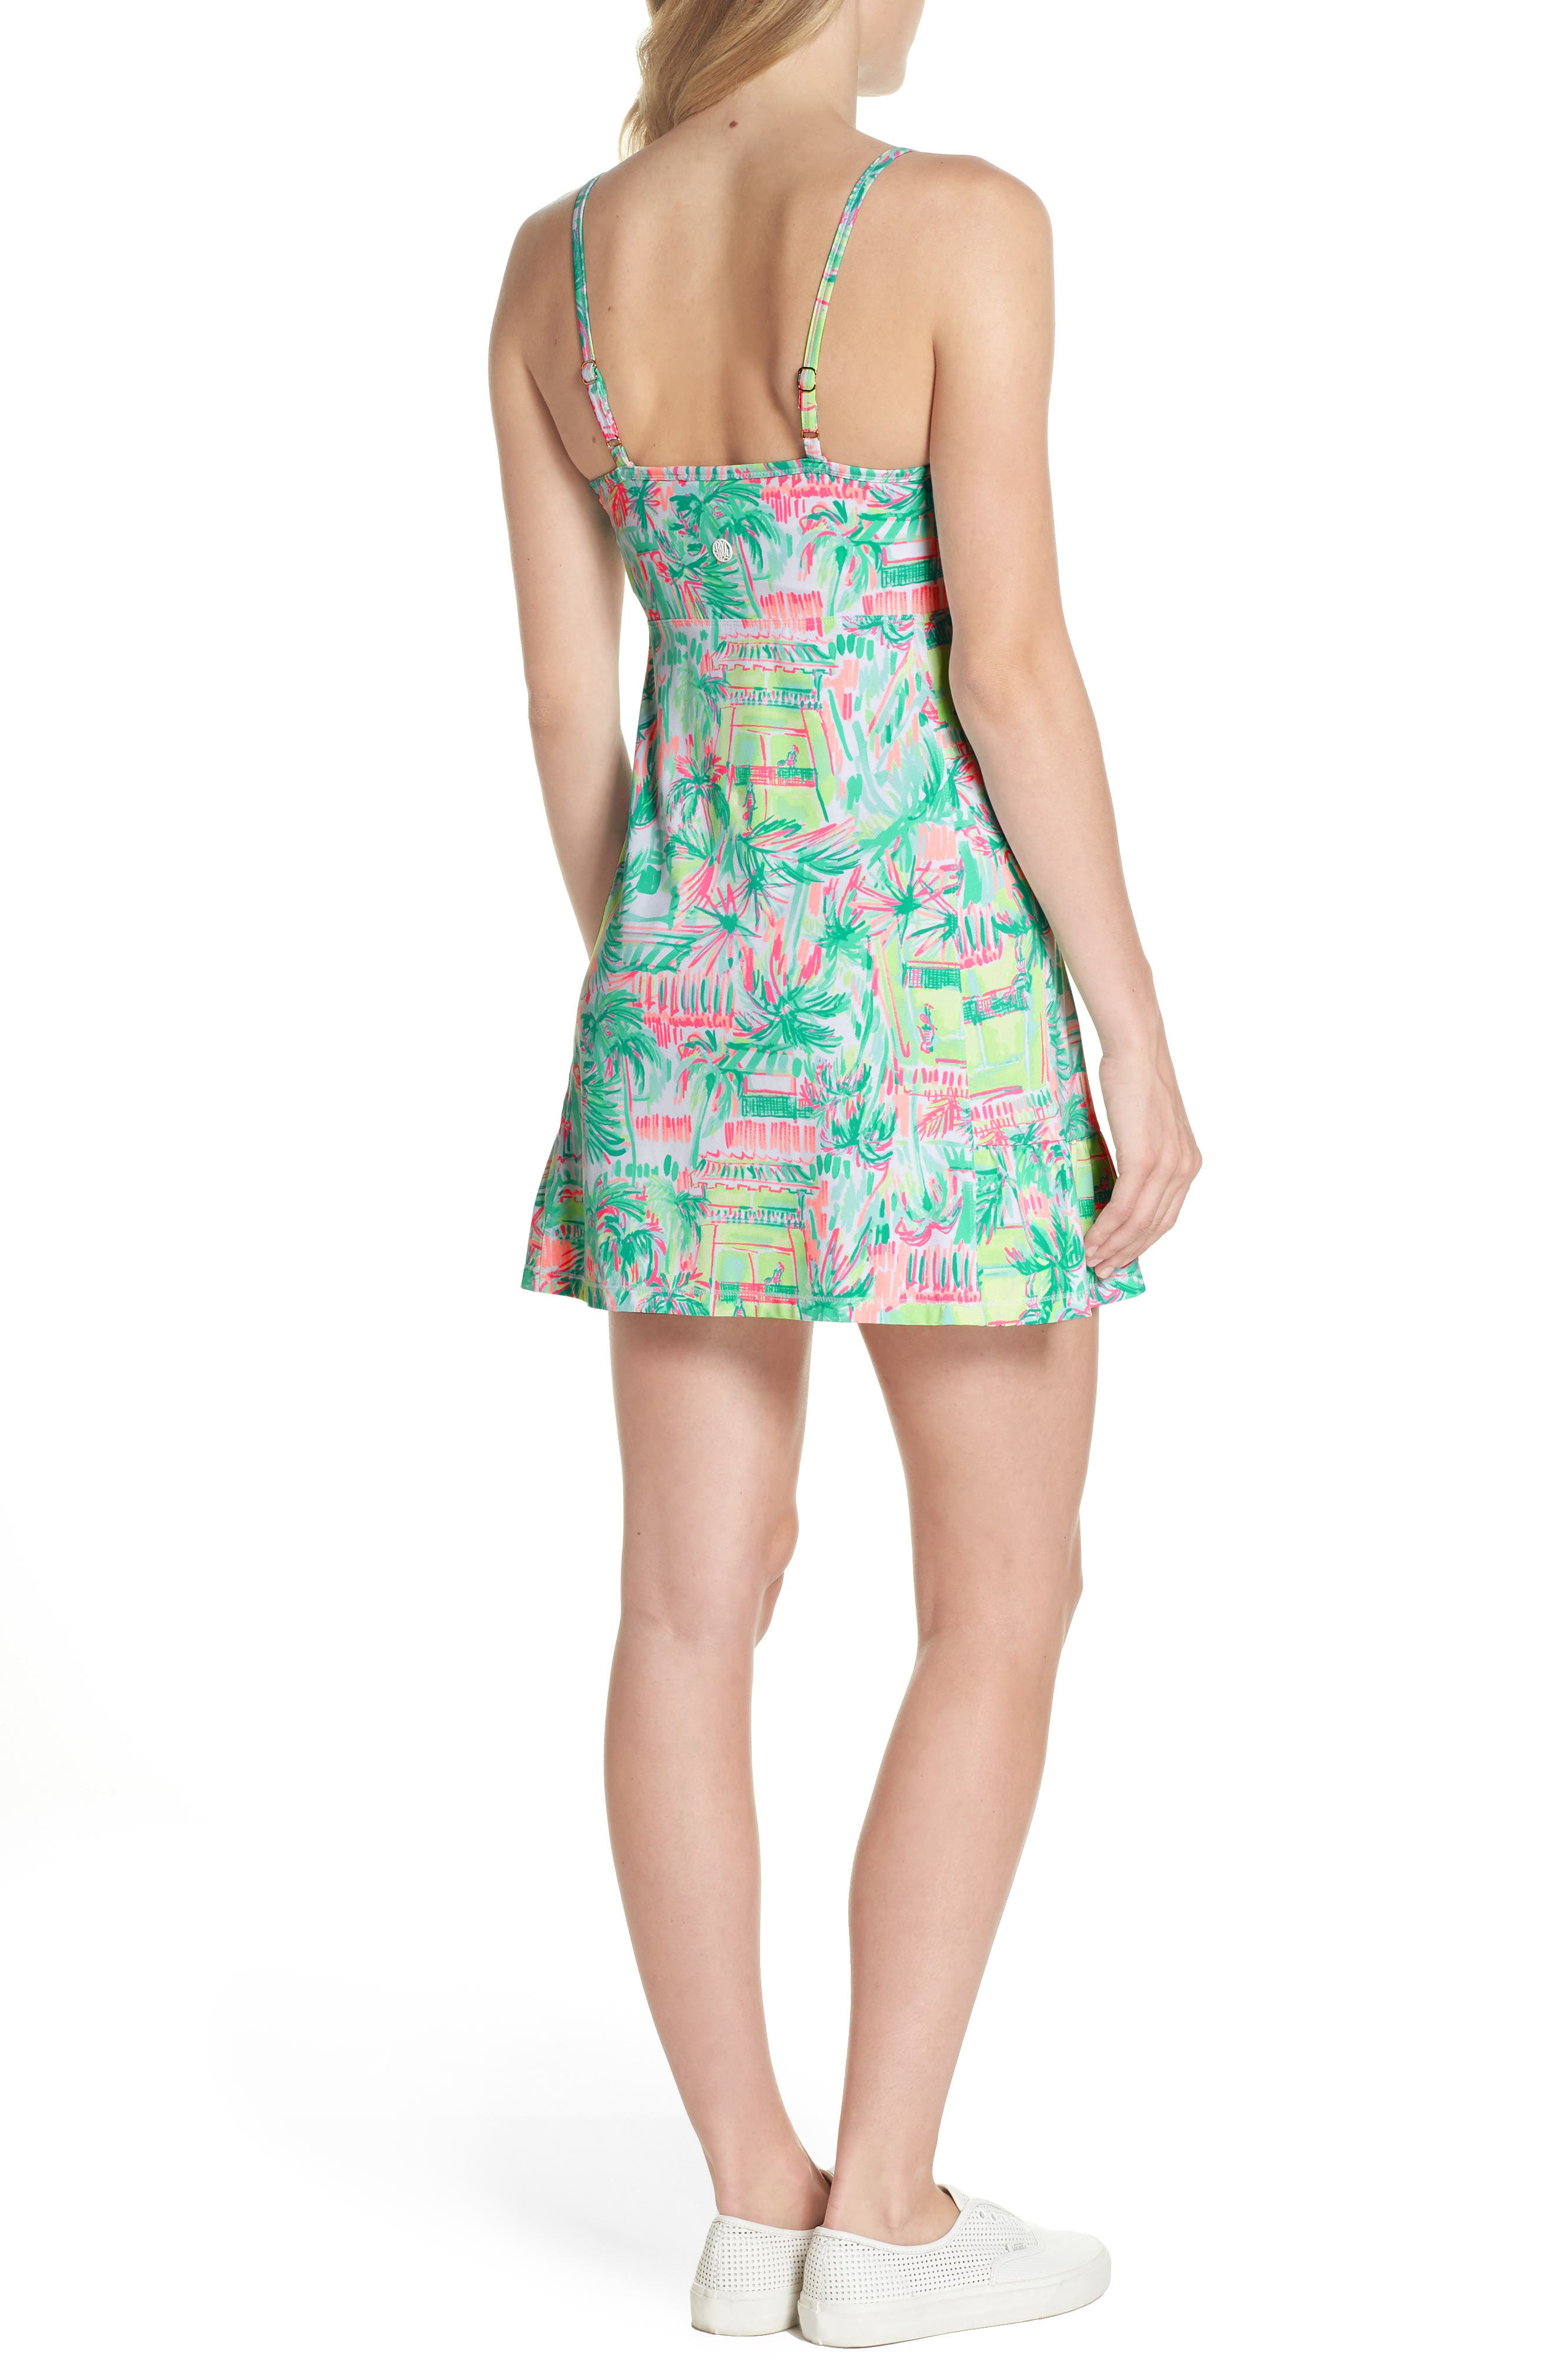 Adelia UPF 50+ Tennis Dress,                             Alternate thumbnail 2, color,                             Multi Perfect Match